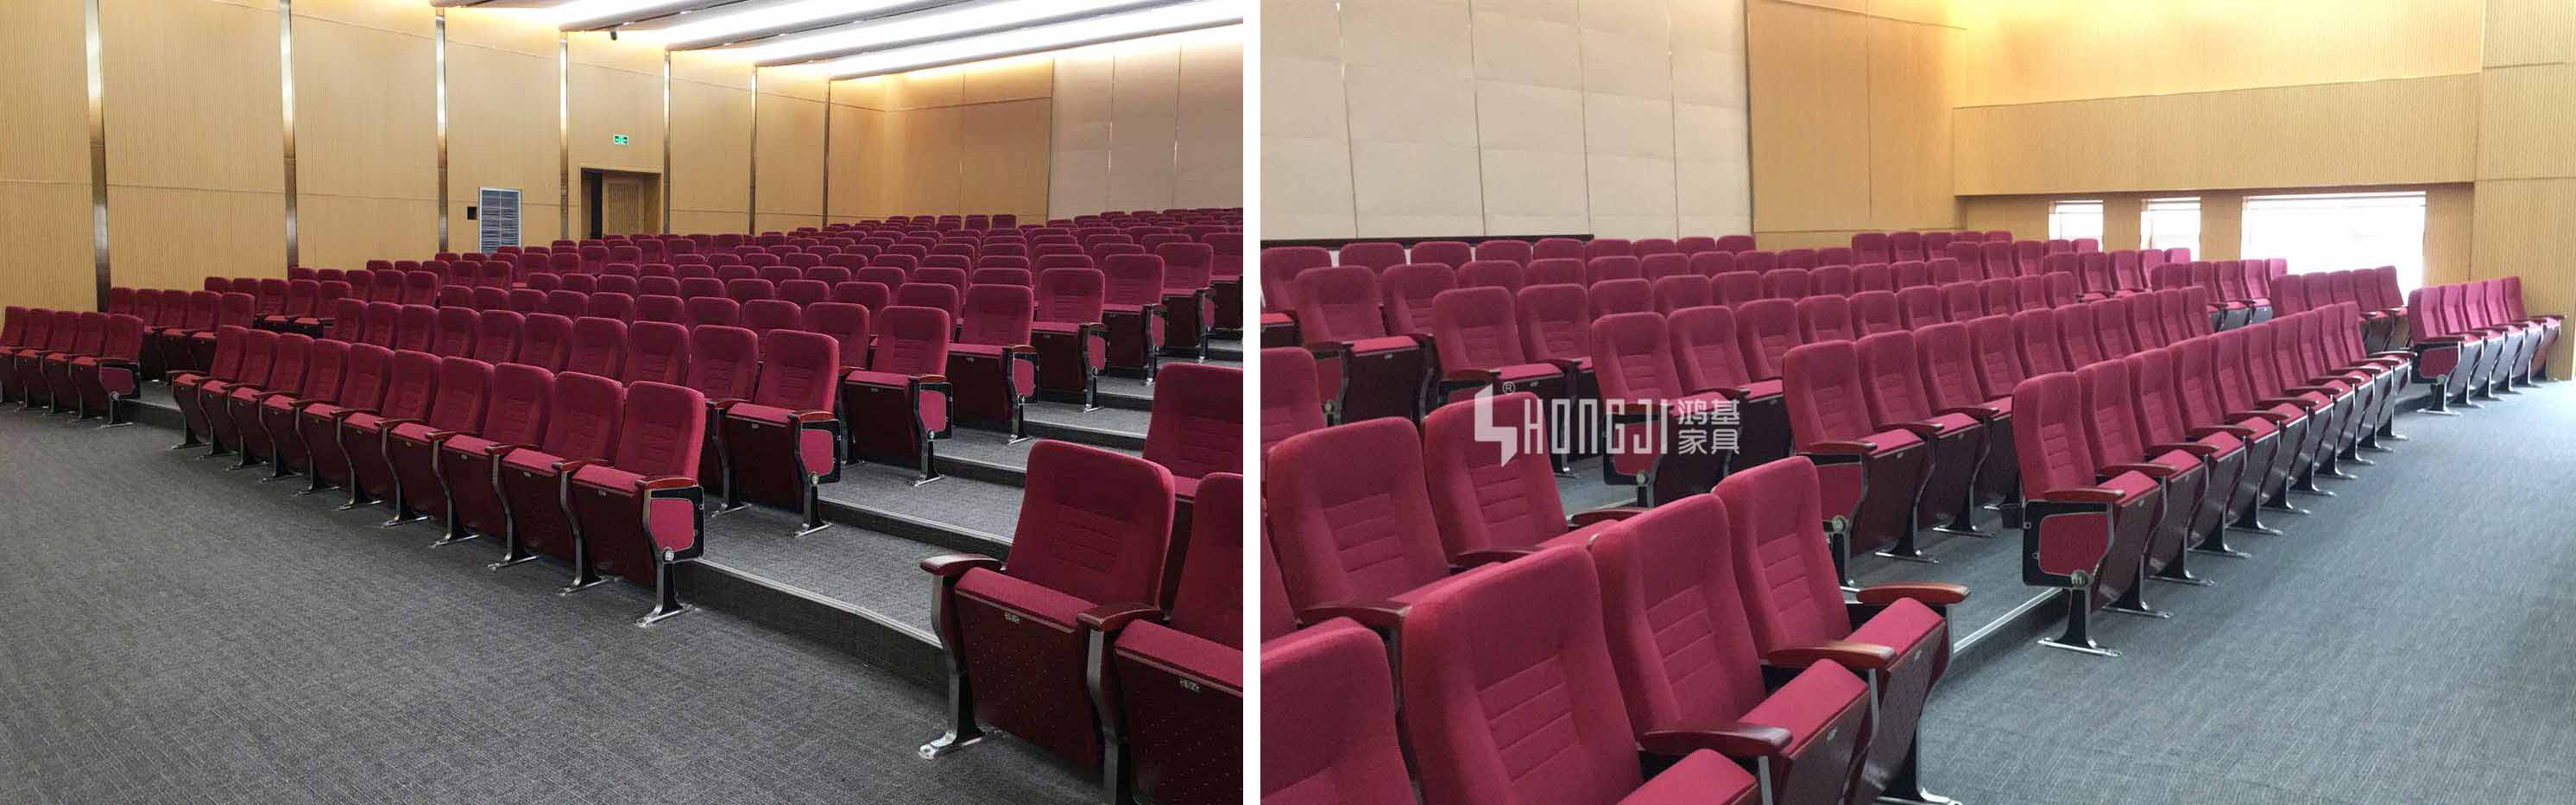 HONGJI custom theater seating manufacturer for university classroom-2